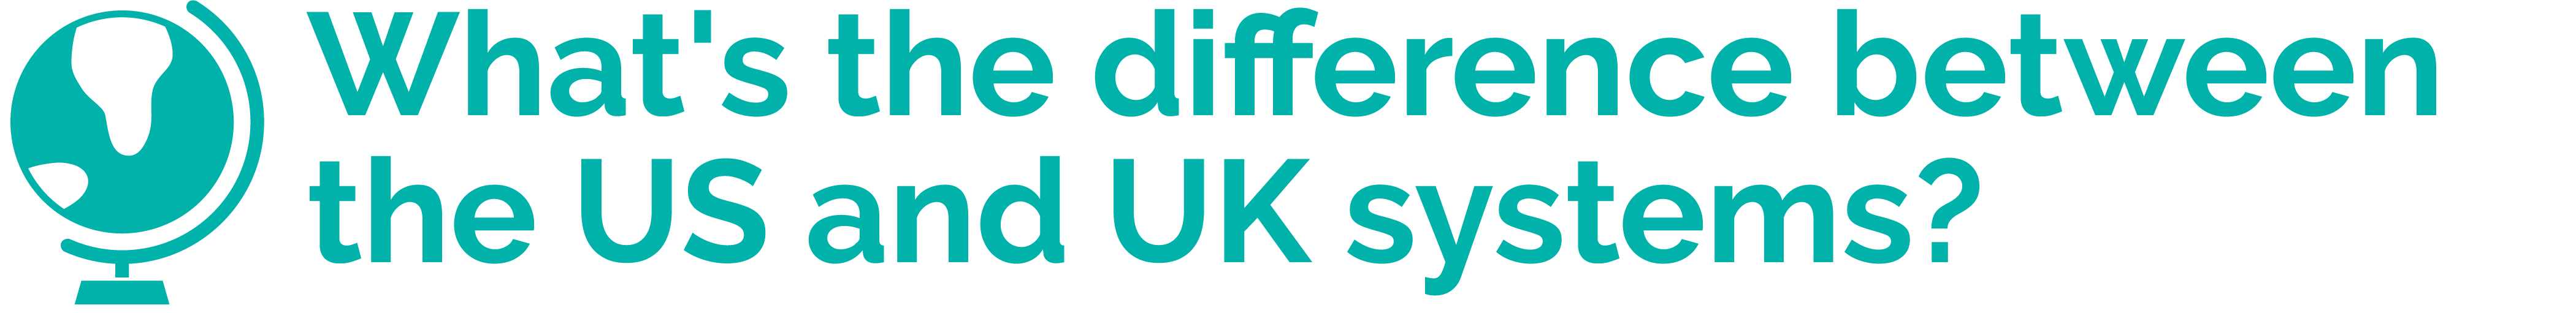 What's the difference bewteen the US Uk and EU healthcare systems?